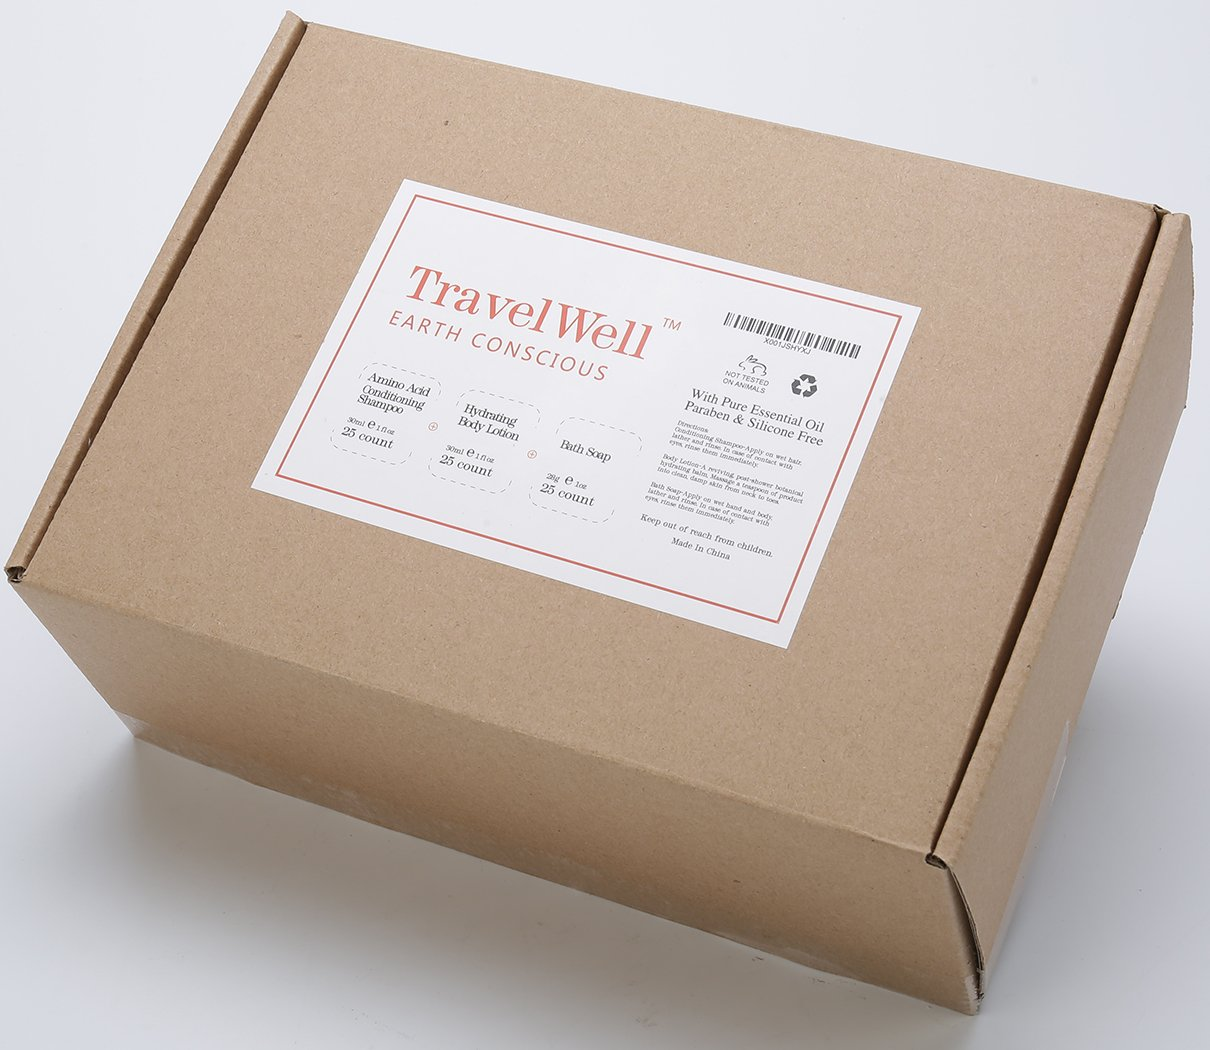 TravelWell Individually Wrapped Set - package